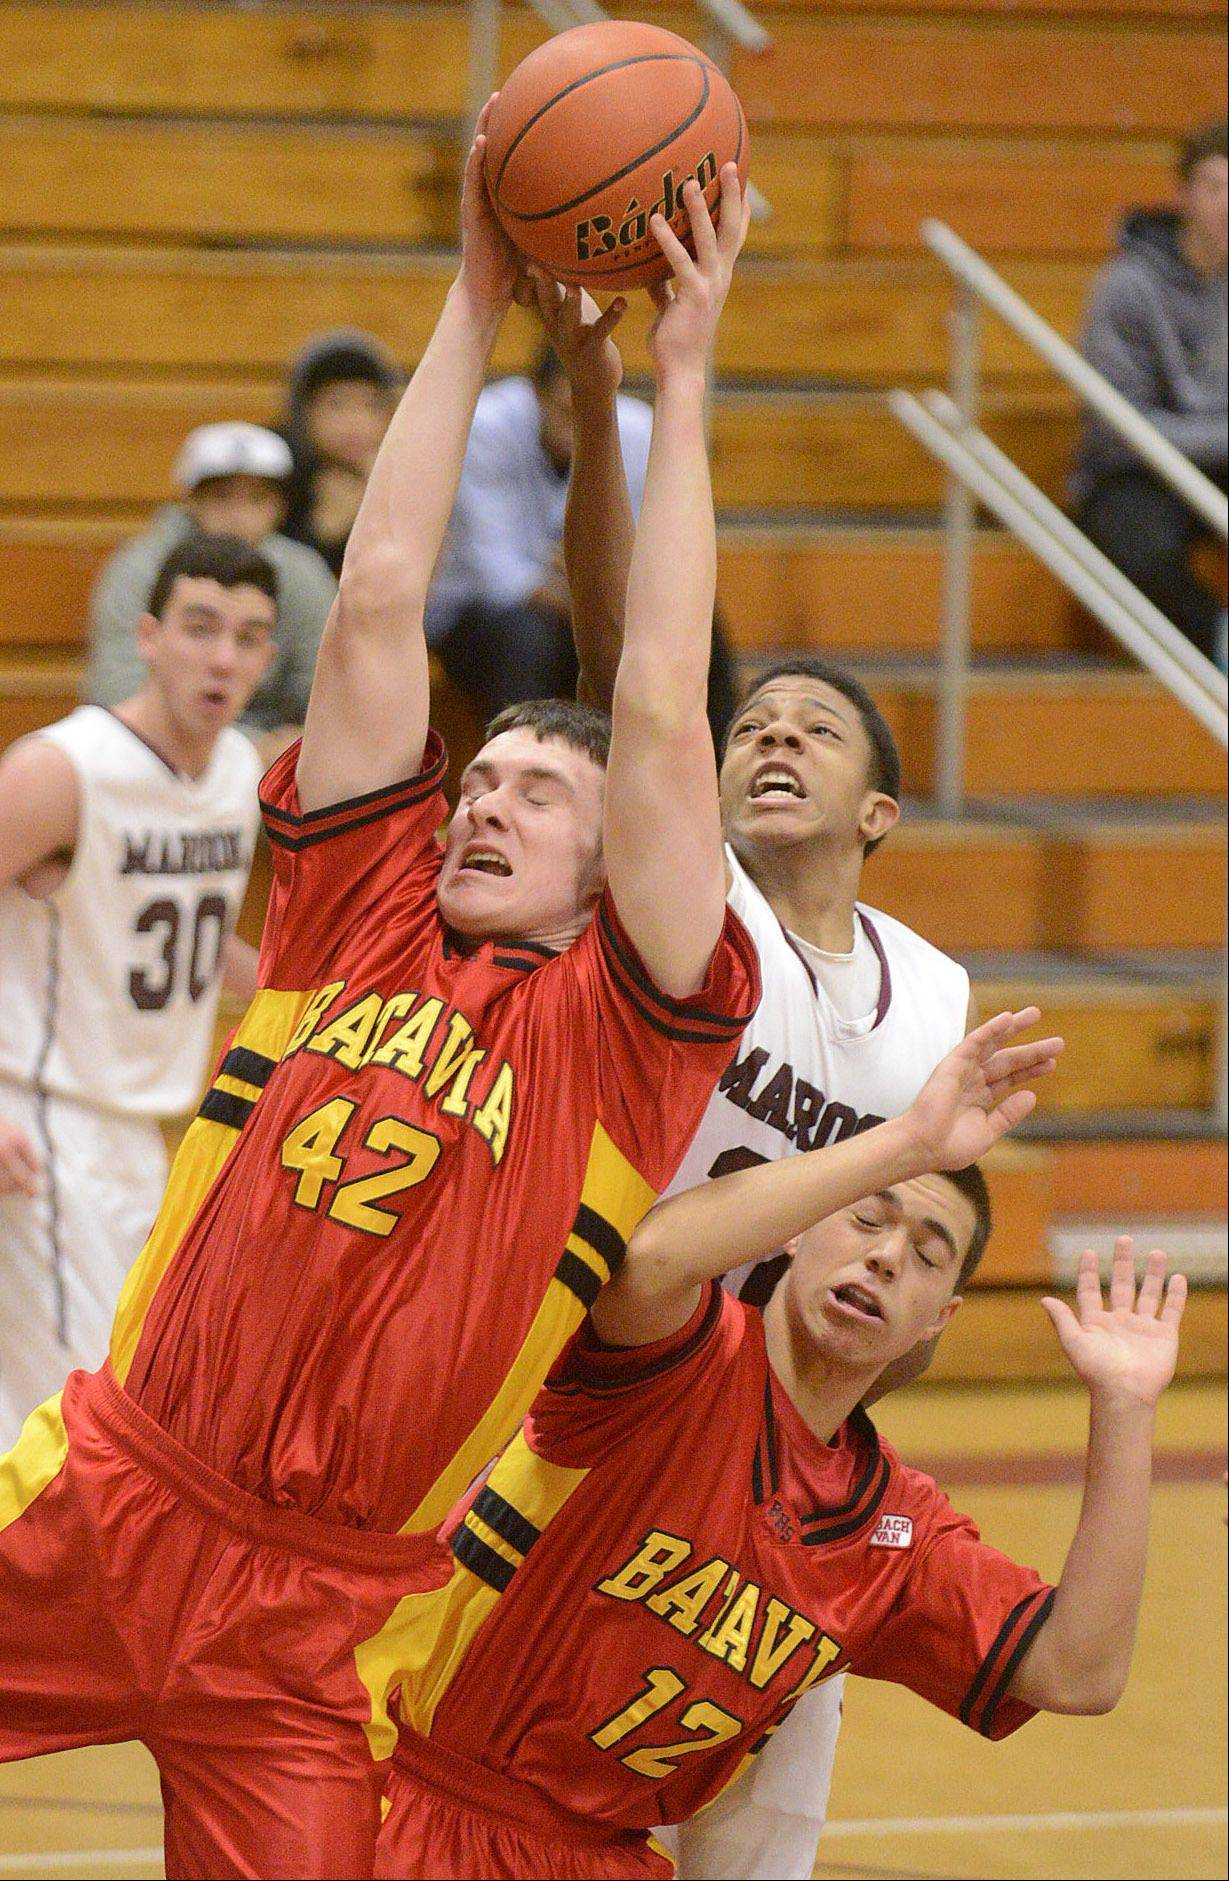 Batavia's Ryan Olson (42) and Elgin's Donte Harper leap for a rebound over Batavia's Canaan Coffey (12) in the second quarter on Saturday, January 18.